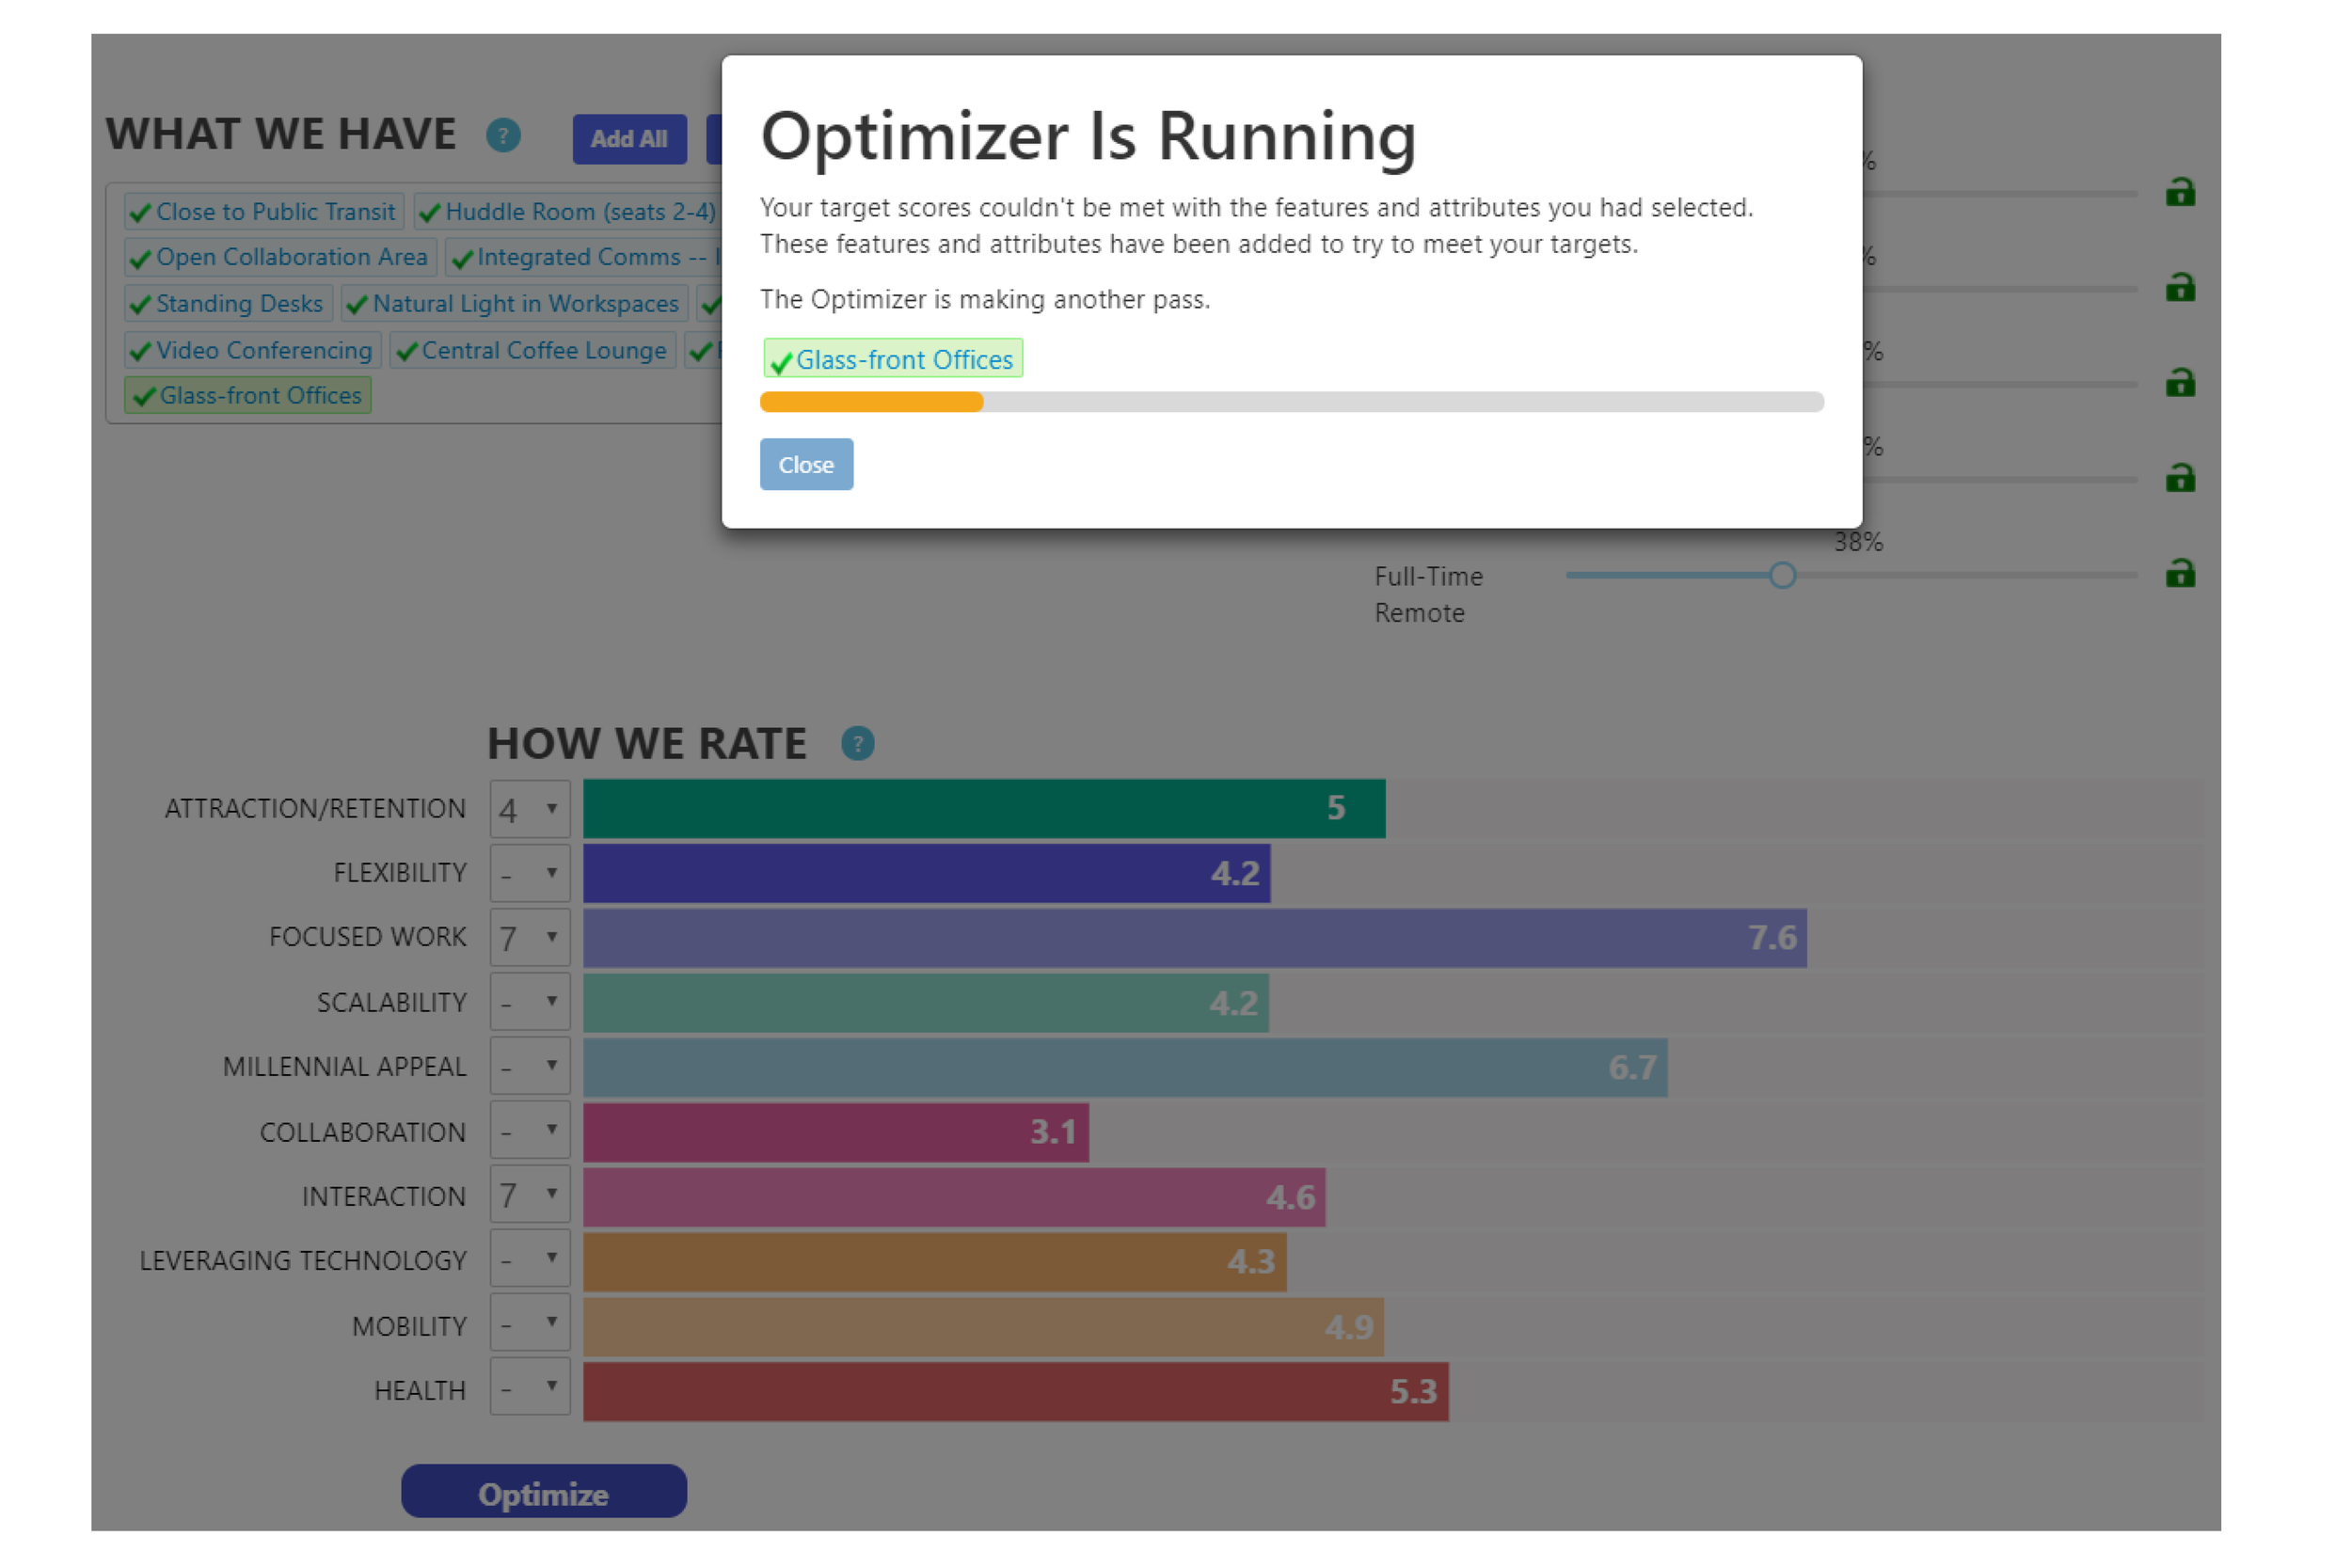 How We Rate_image 2_Optimizer suggestion.png